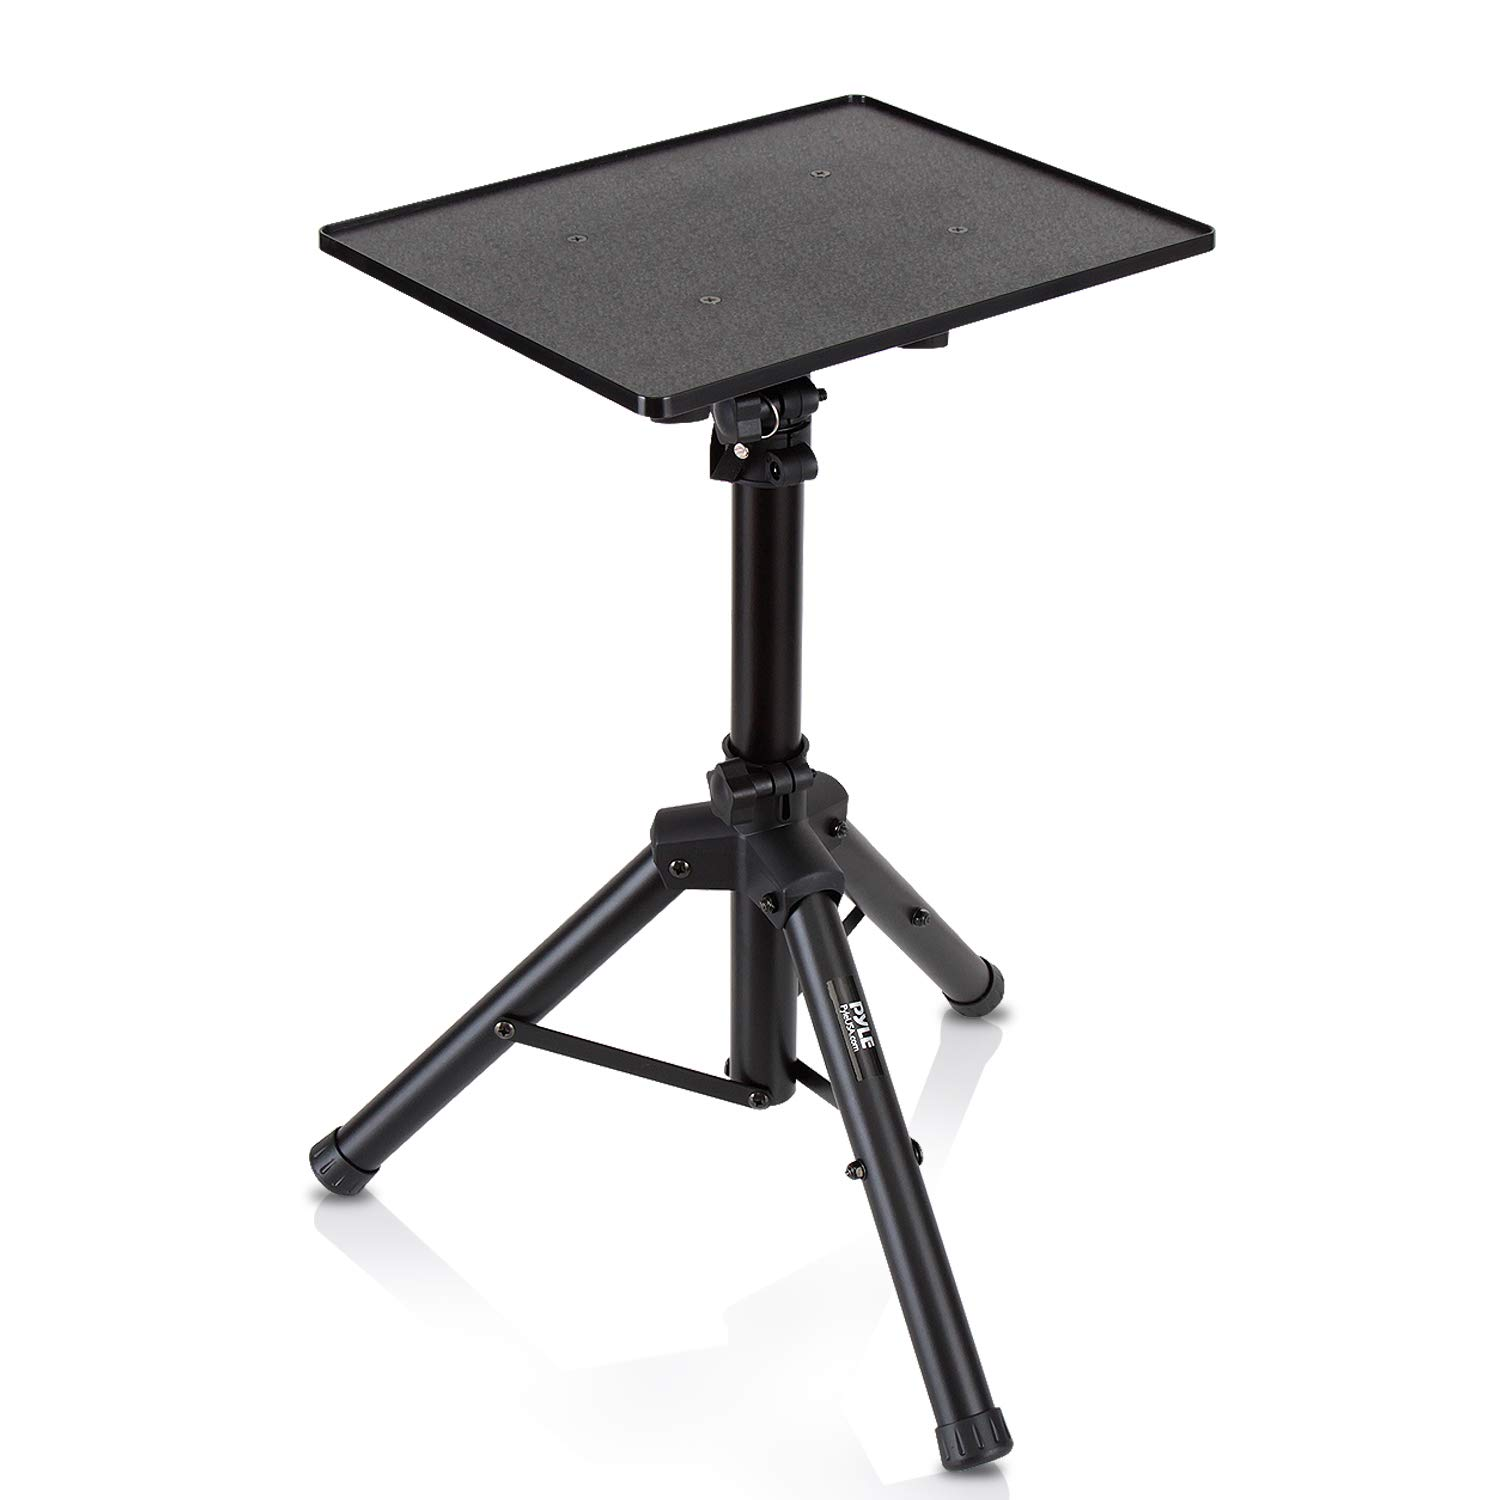 Universal Laptop Projector Tripod Stand - Computer, Book, DJ Equipment Holder Mount Height Adjustable Up to 35 Inches w/ 14'' x 11'' Plate Size - Perfect for Stage or Studio Use - PylePro PLPTS2 by Pyle